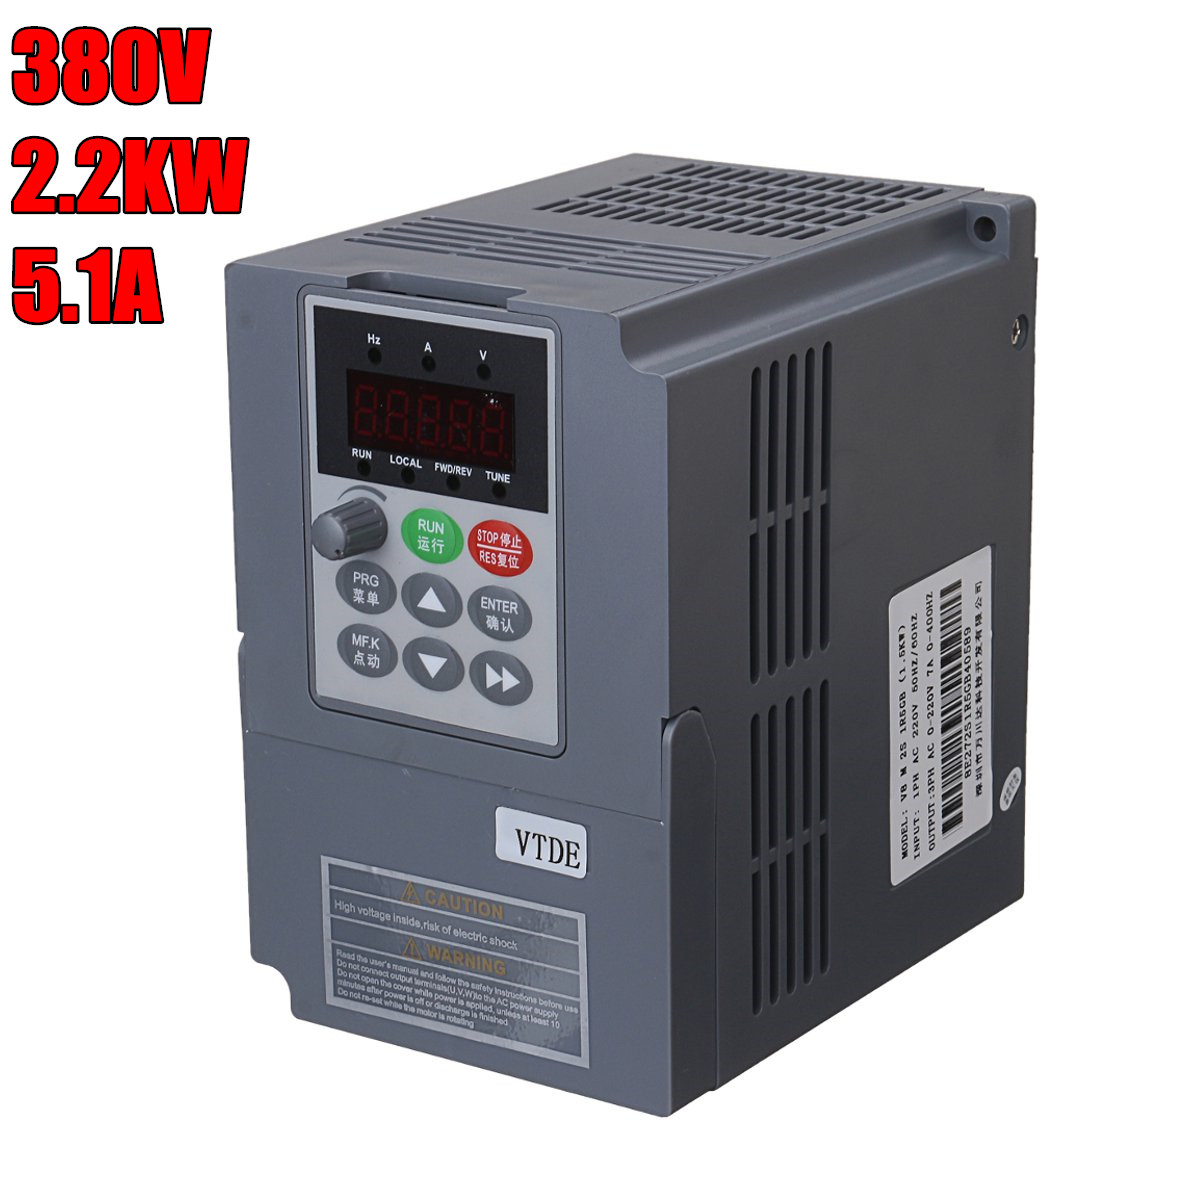 380v 2.2kw CNC Spindle motor speed control VFD Variable Frequency Drive VFD 3PH Input 3PH frequency Drive inverter for motor new atv312hu75n4 vfd inverter input 3ph 380v 17a 7 5kw